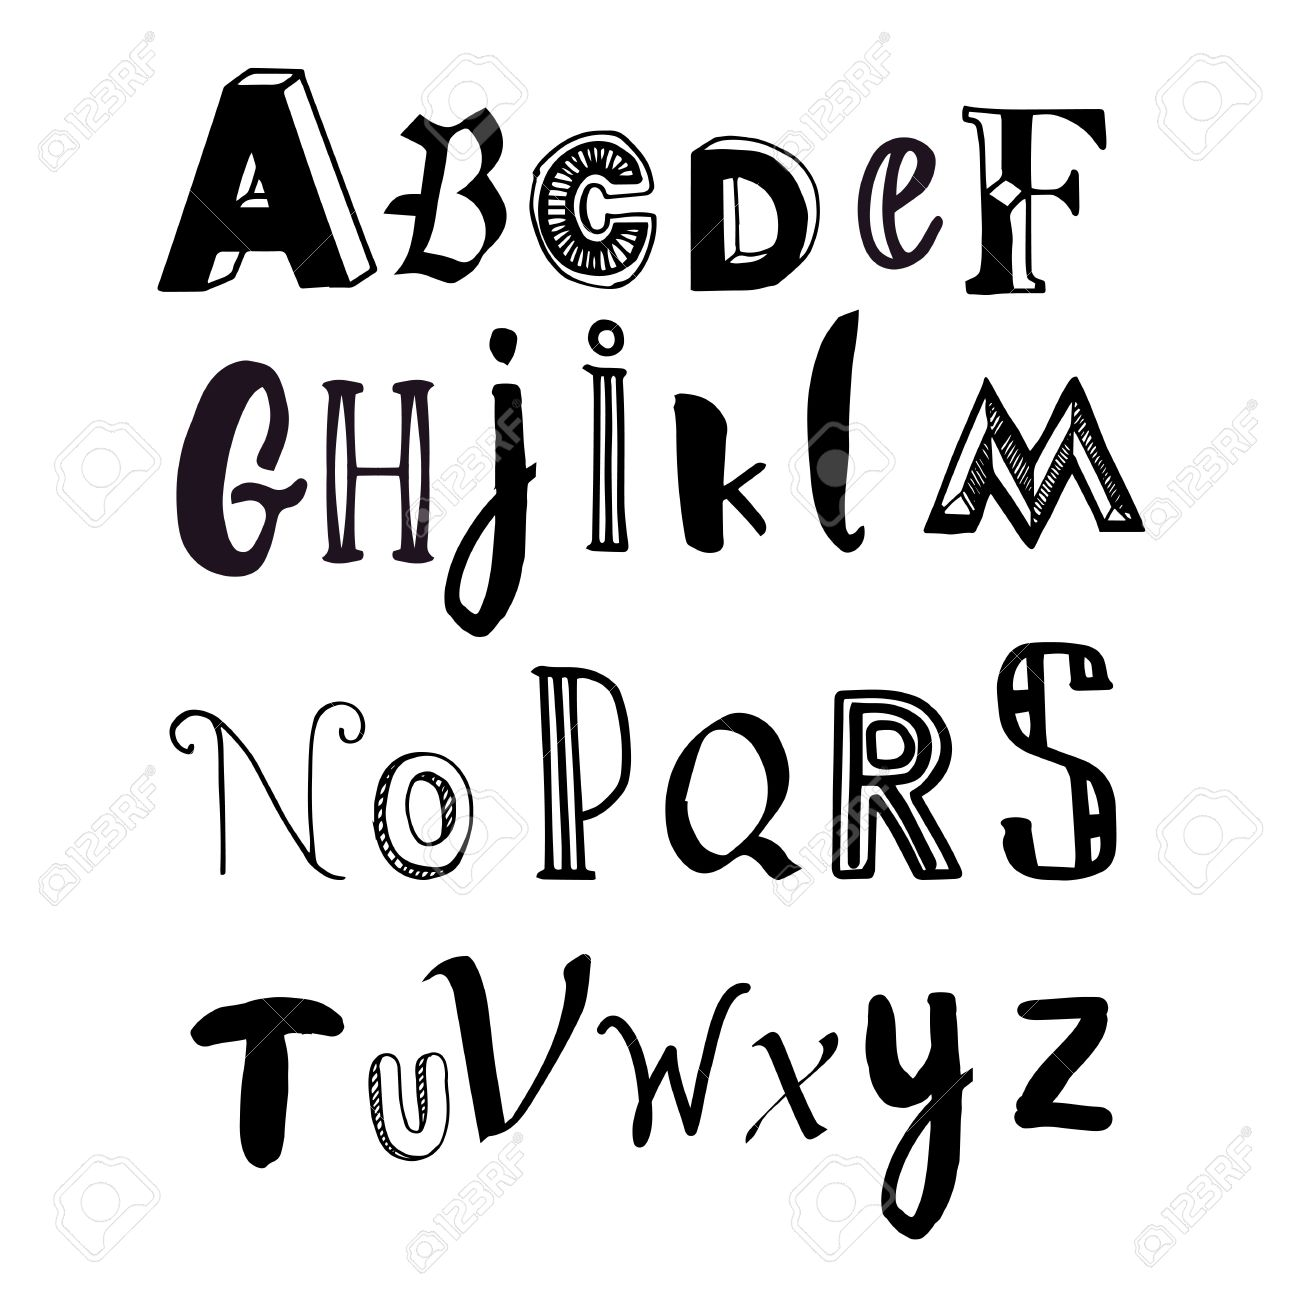 Letters Of The Alphabet Written With A Brush On White Background In Different